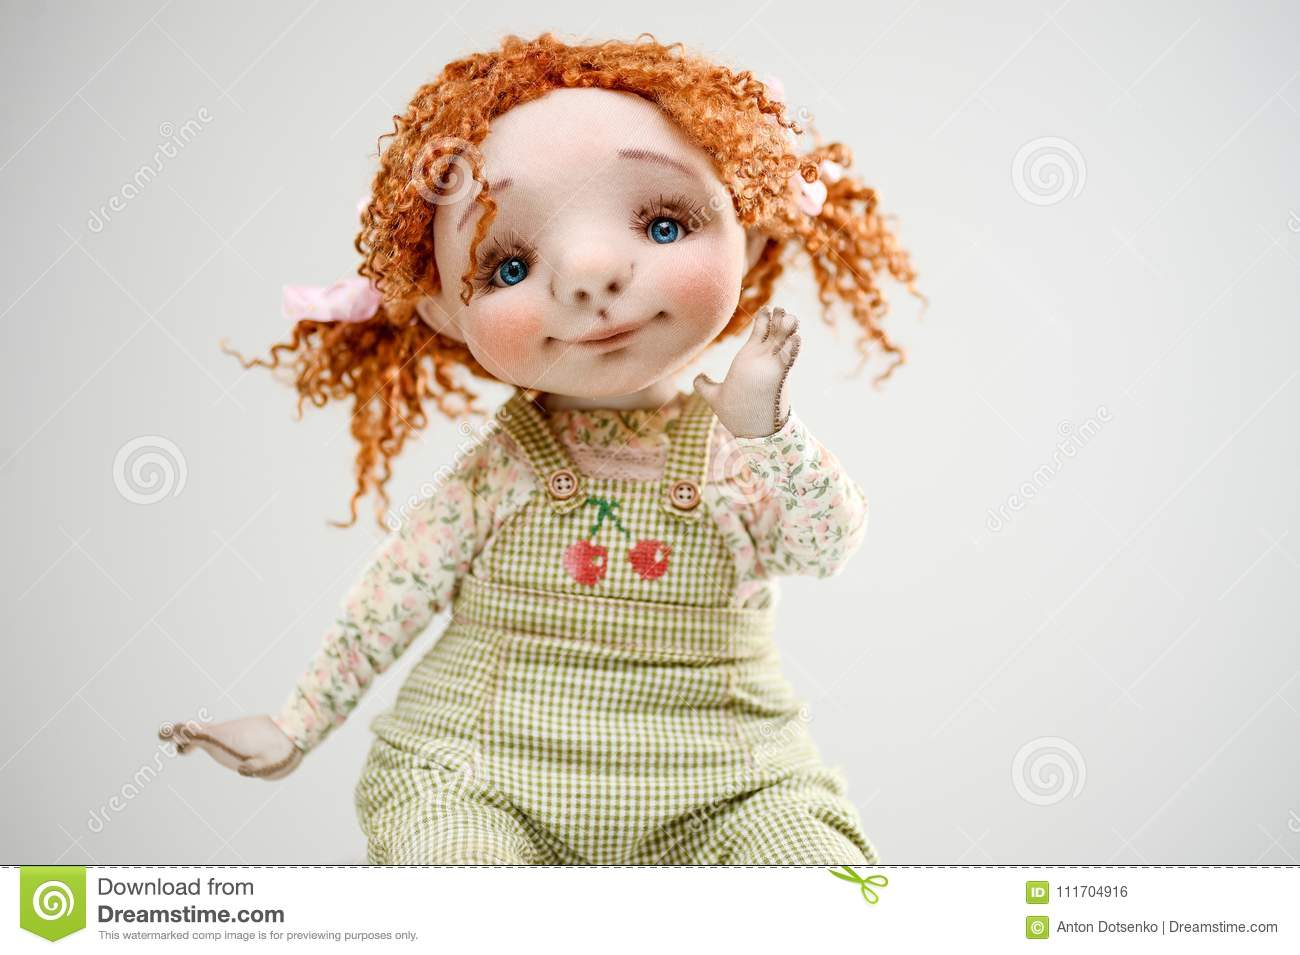 Idea redhead toy young